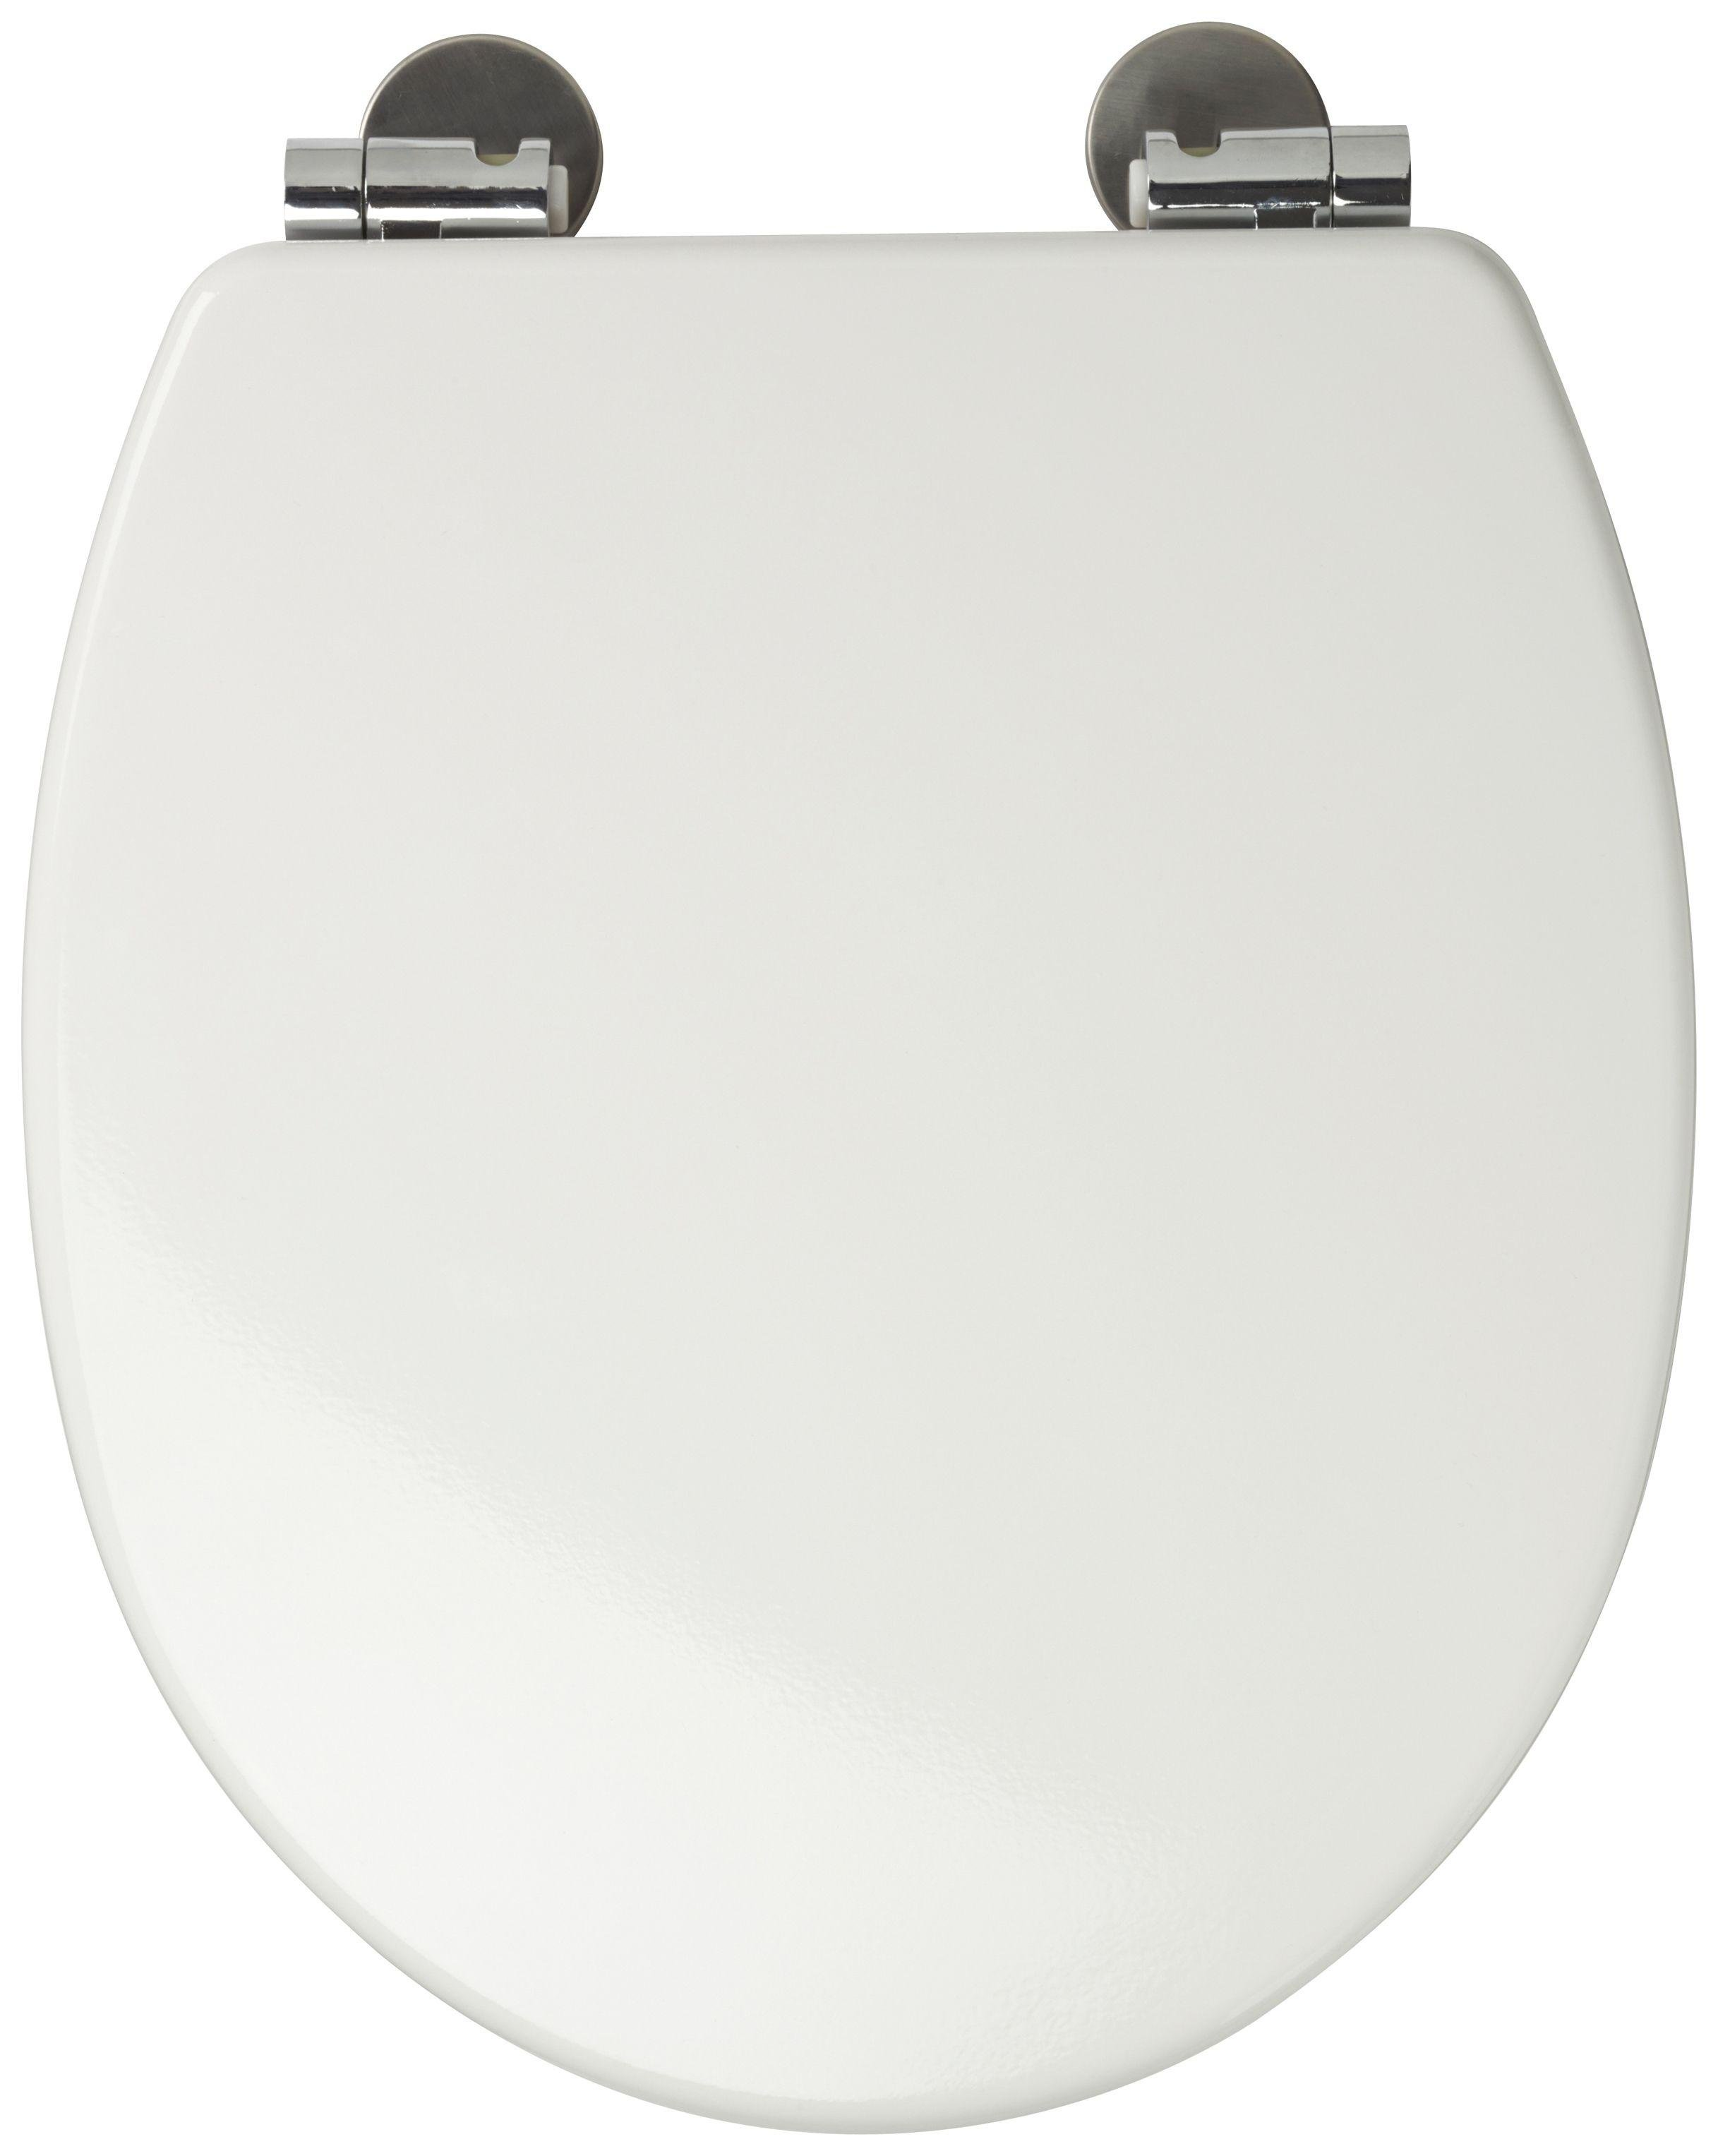 Image of Croydex - Sit Tight Dawson - Toilet Seat - White